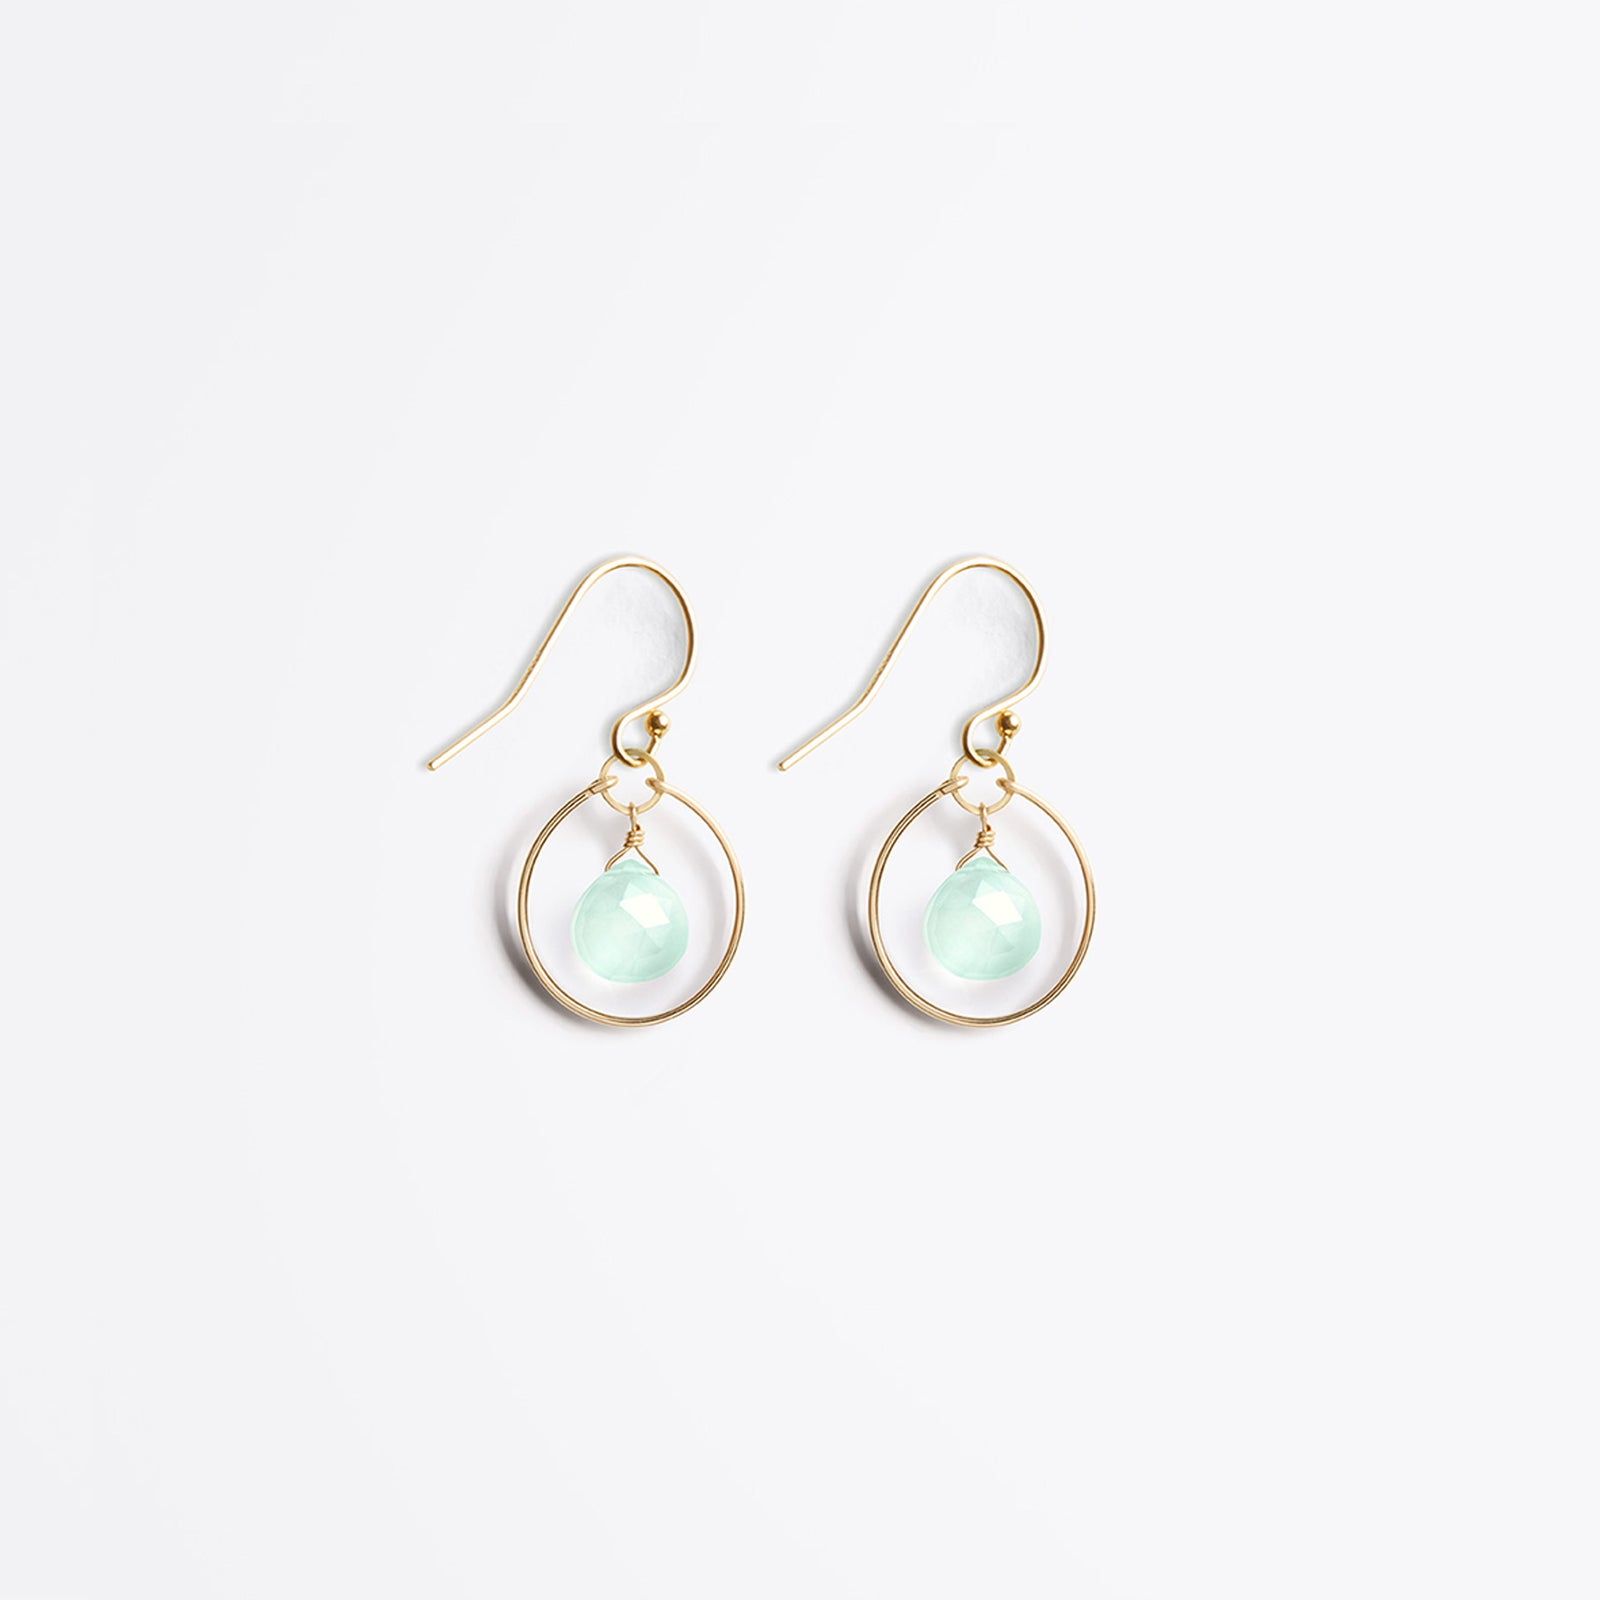 Wanderlust Life Ethically Handmade jewellery made in the UK. Minimalist gold and fine cord jewellery. petite stella orb earring, sea glass chalcedony